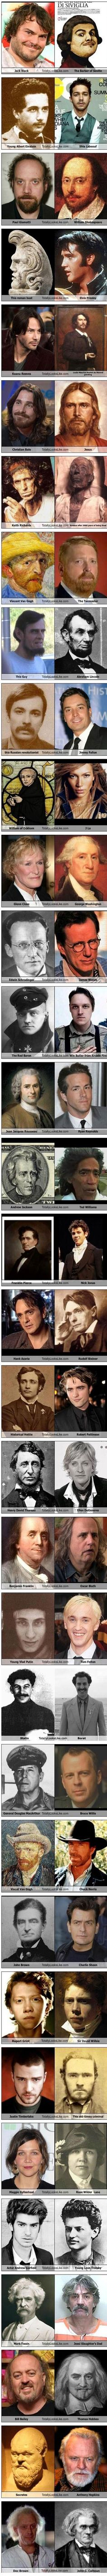 Celebrity Look a Likes . . .  http://gloriousmind.com/funny-celebrities-historical-look-alikes/